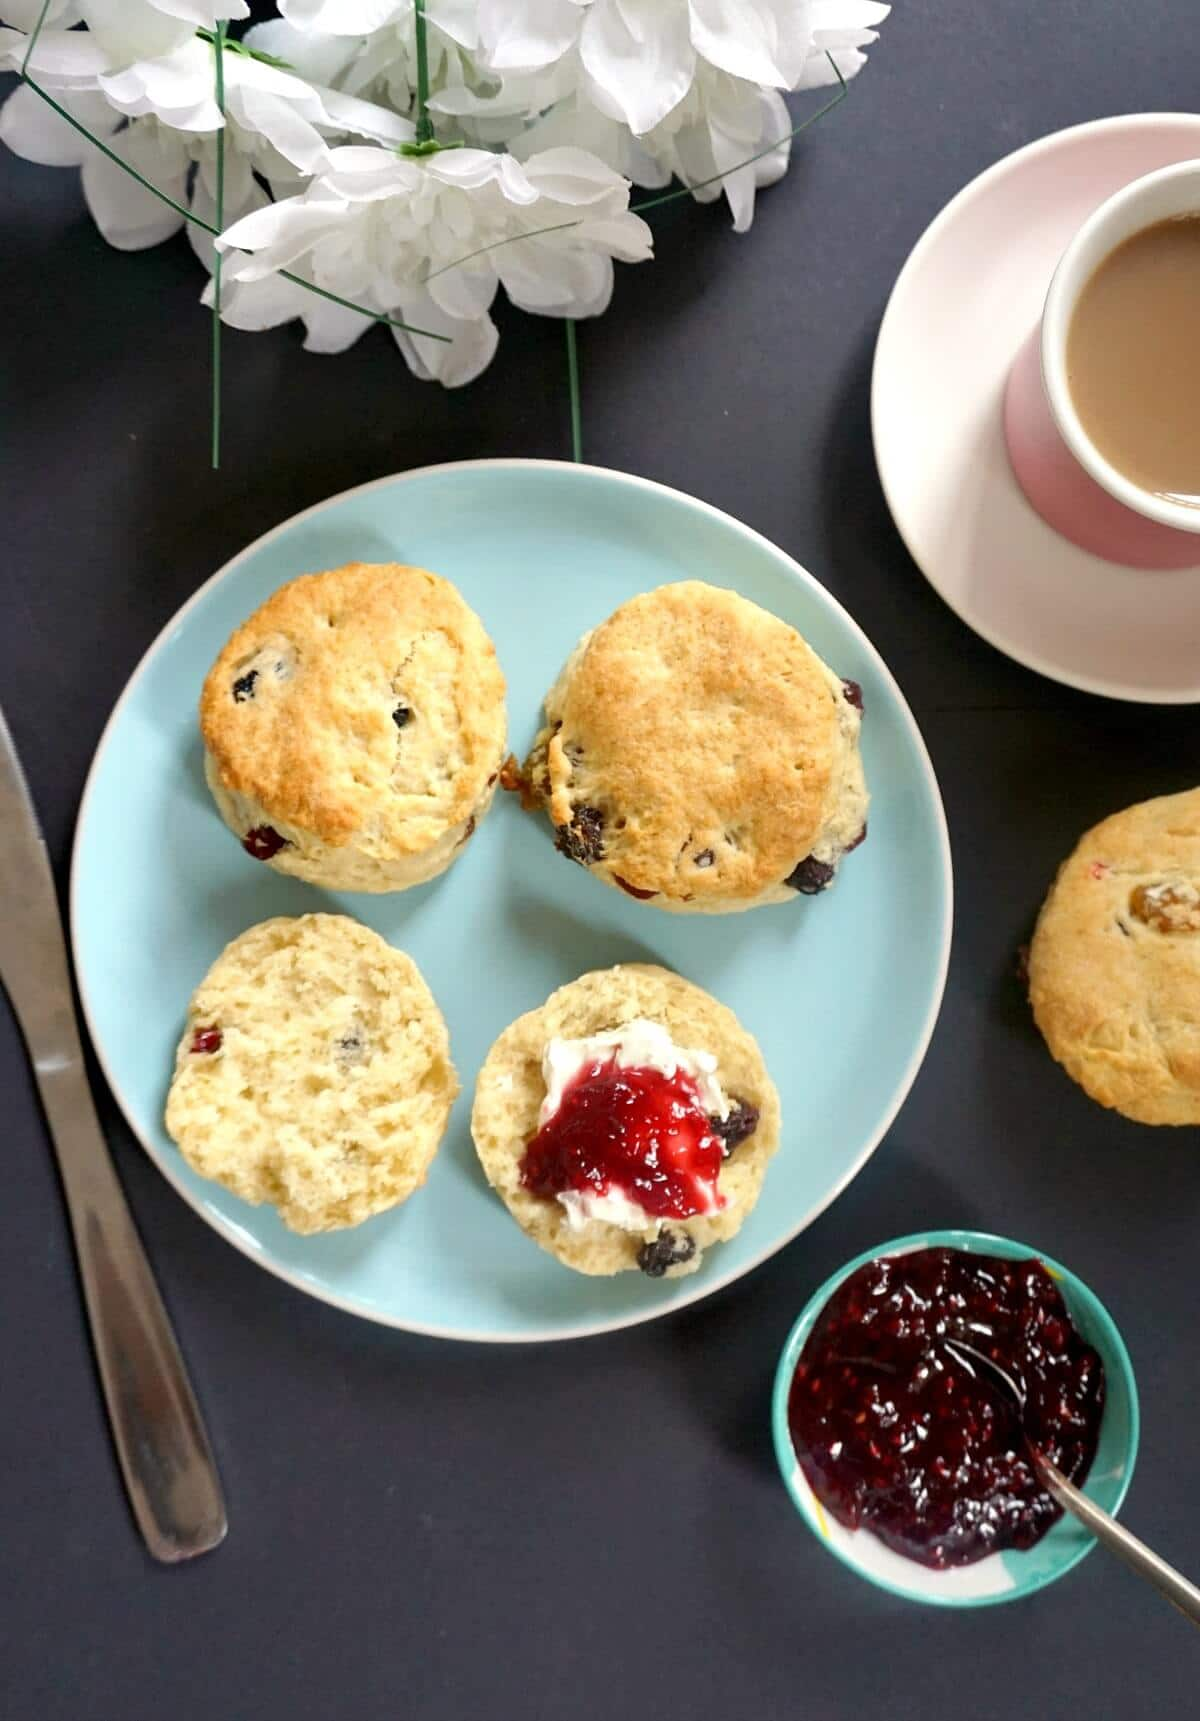 Overhead shoot of a light blue plate with 2 whole scones and 2 halves, a small bowl of jam on the side, a tea cup and a knife